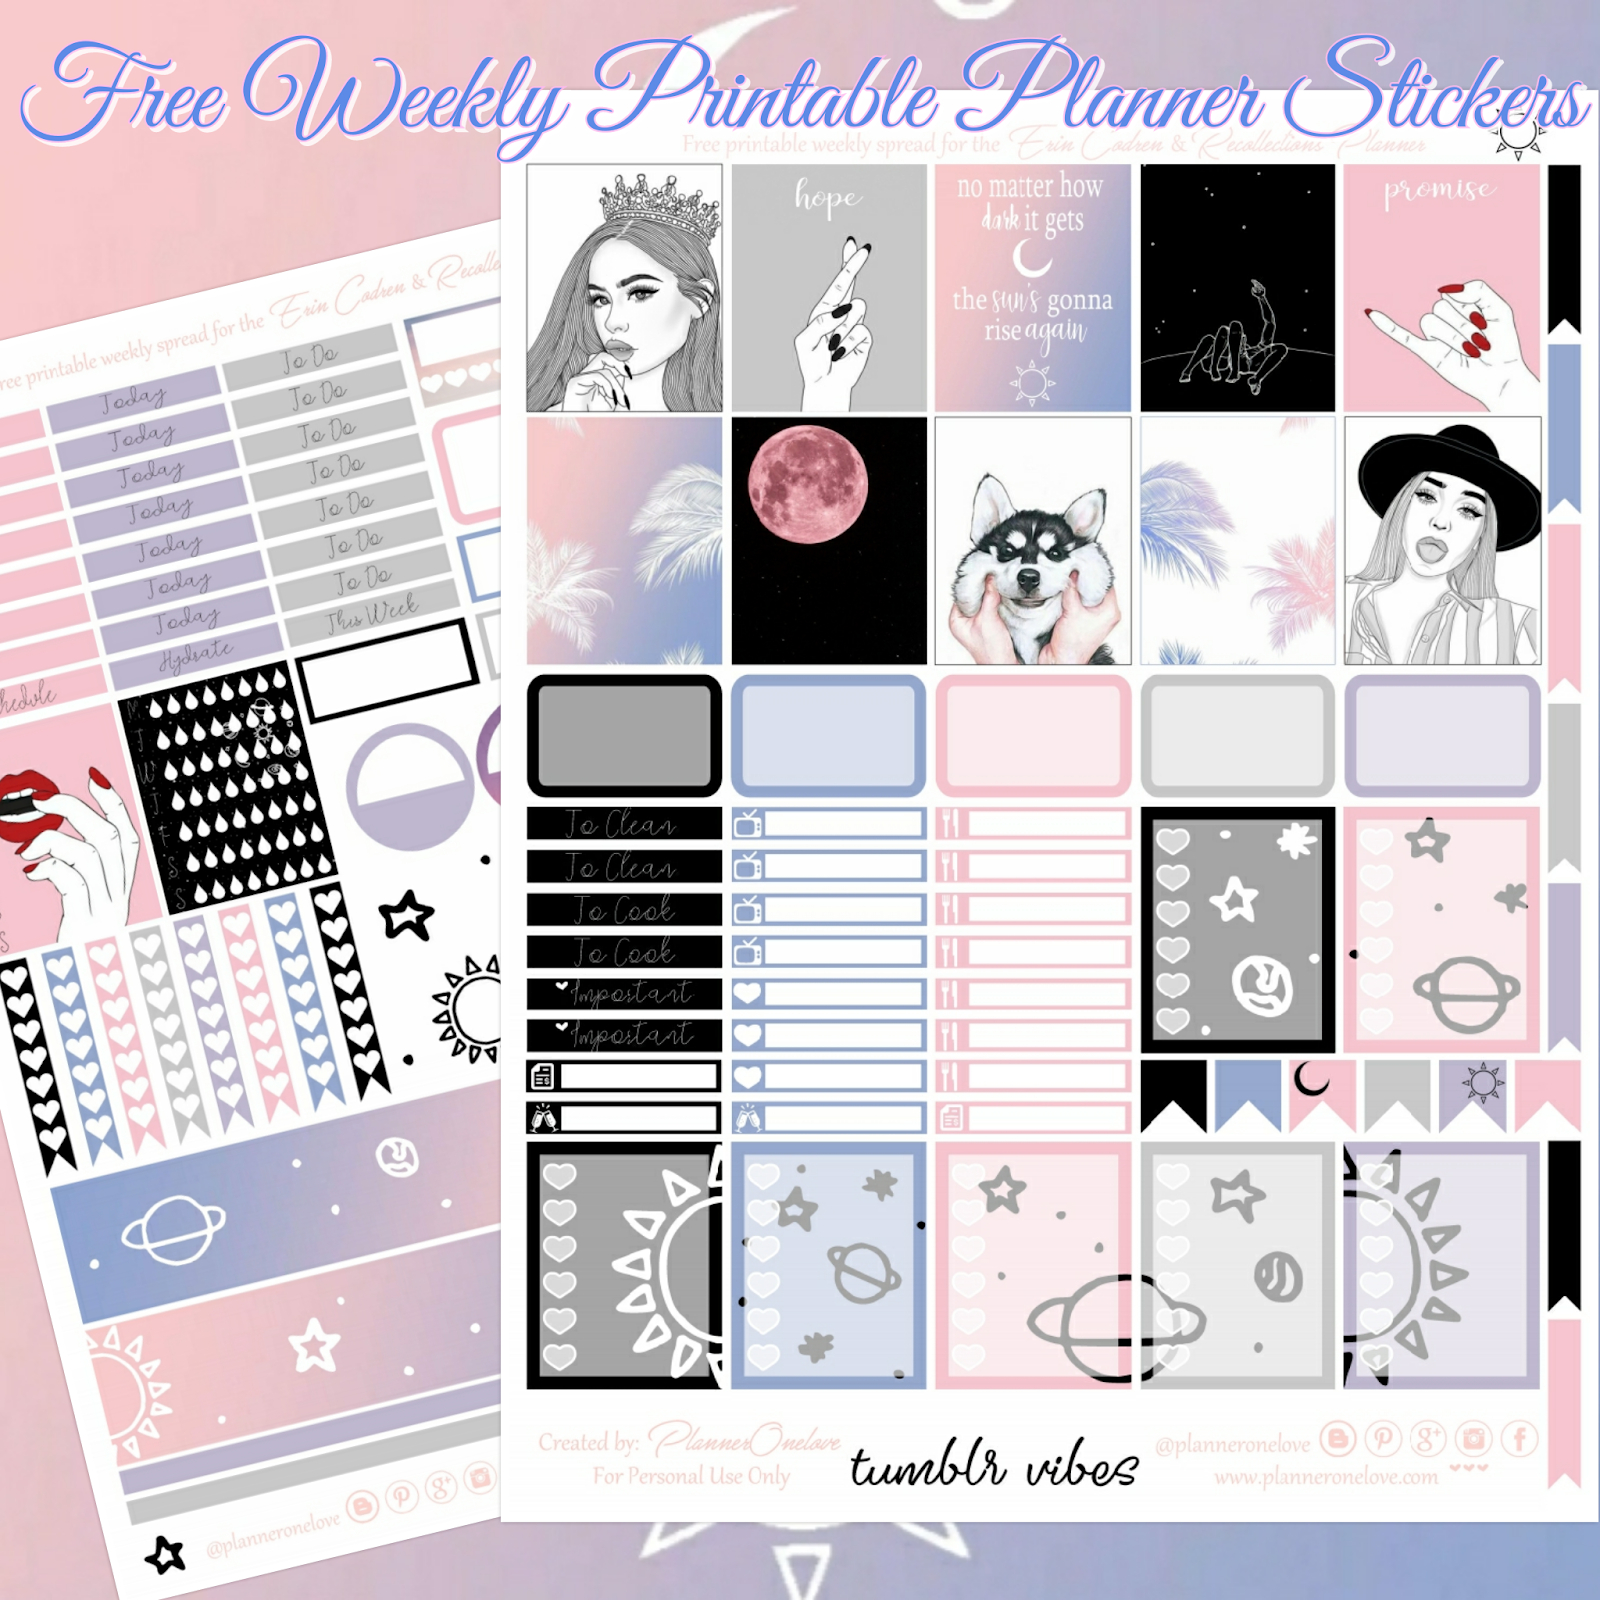 Free Tumblr Vibes Printable Planner Stickers For The Erin Condren - Free Printable Tumblr Stickers